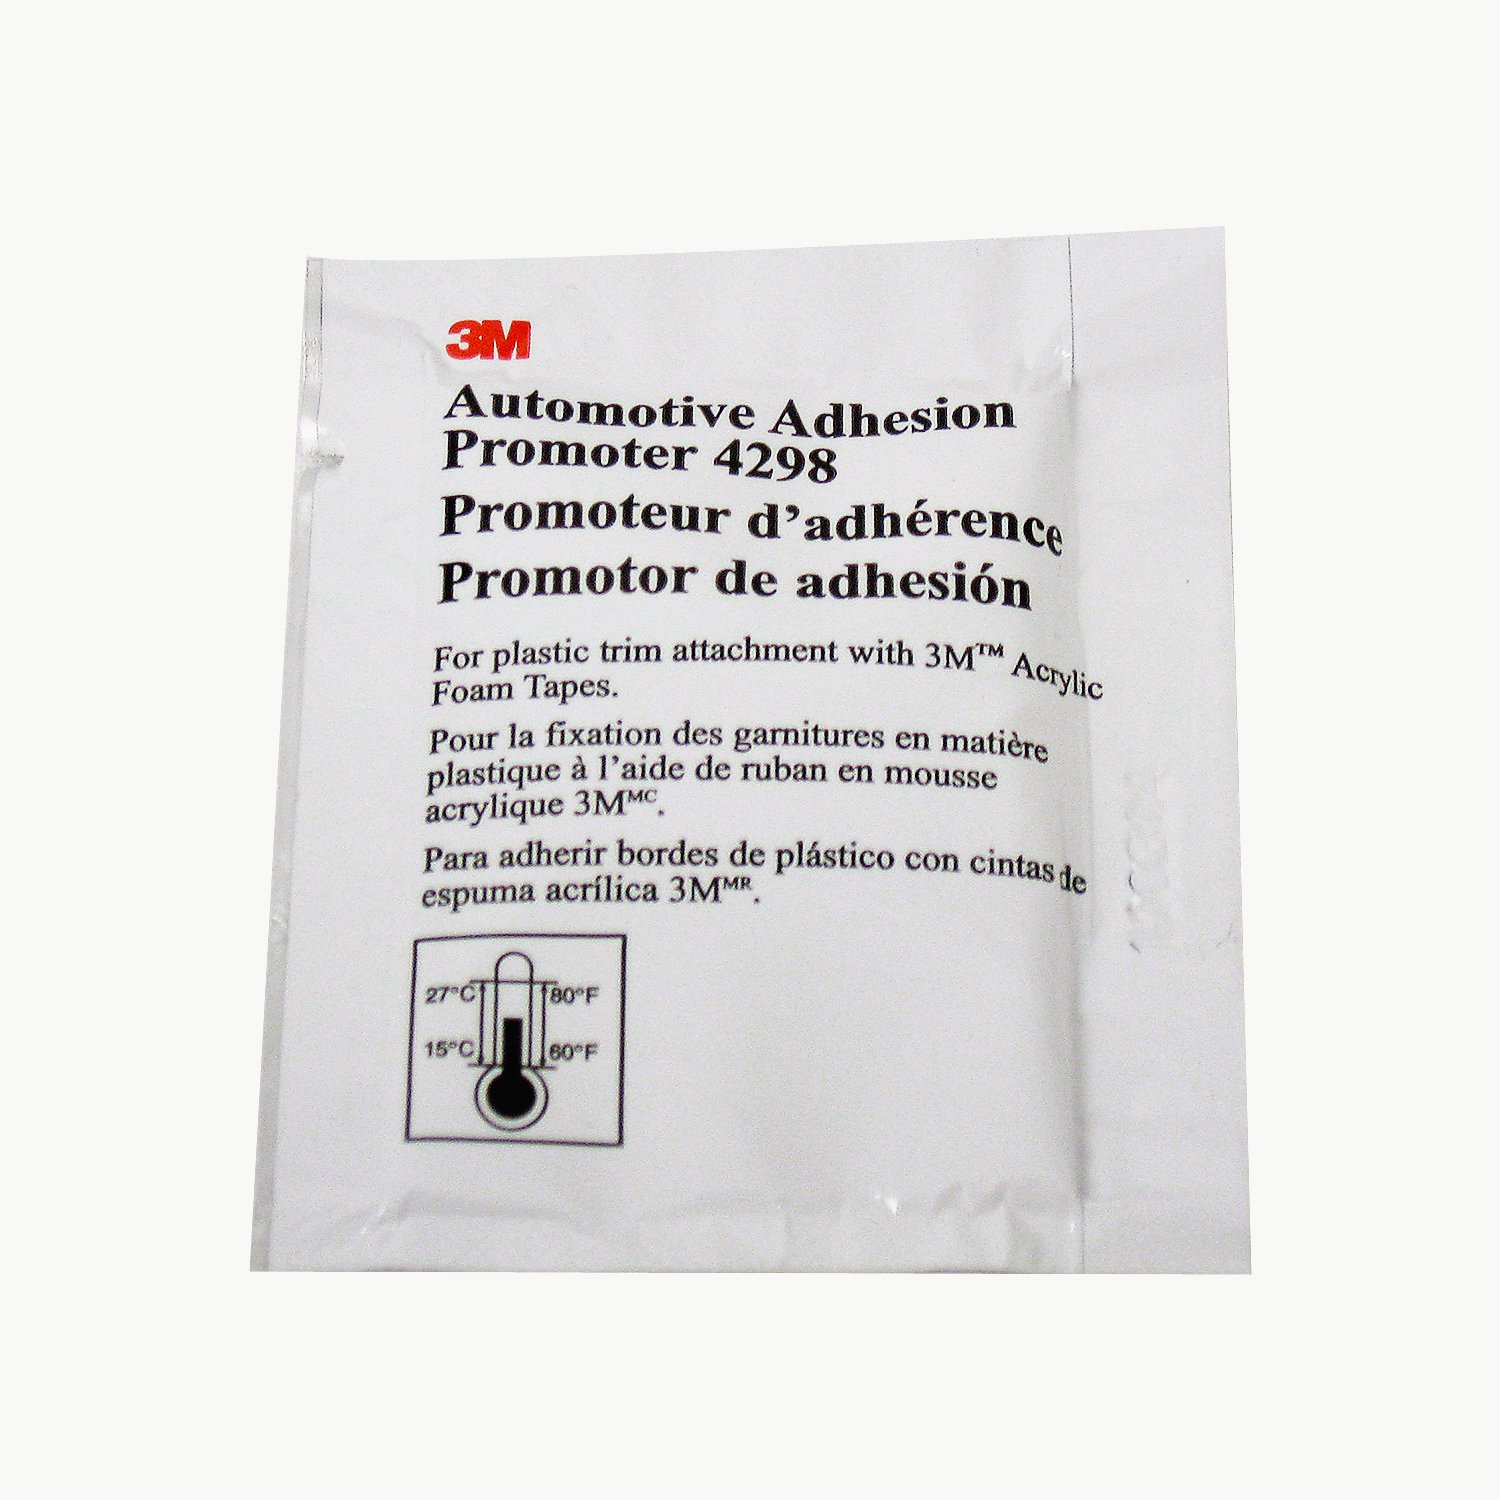 3M 4298 Adhesion Promoter, Sponge Applicator (3) product image